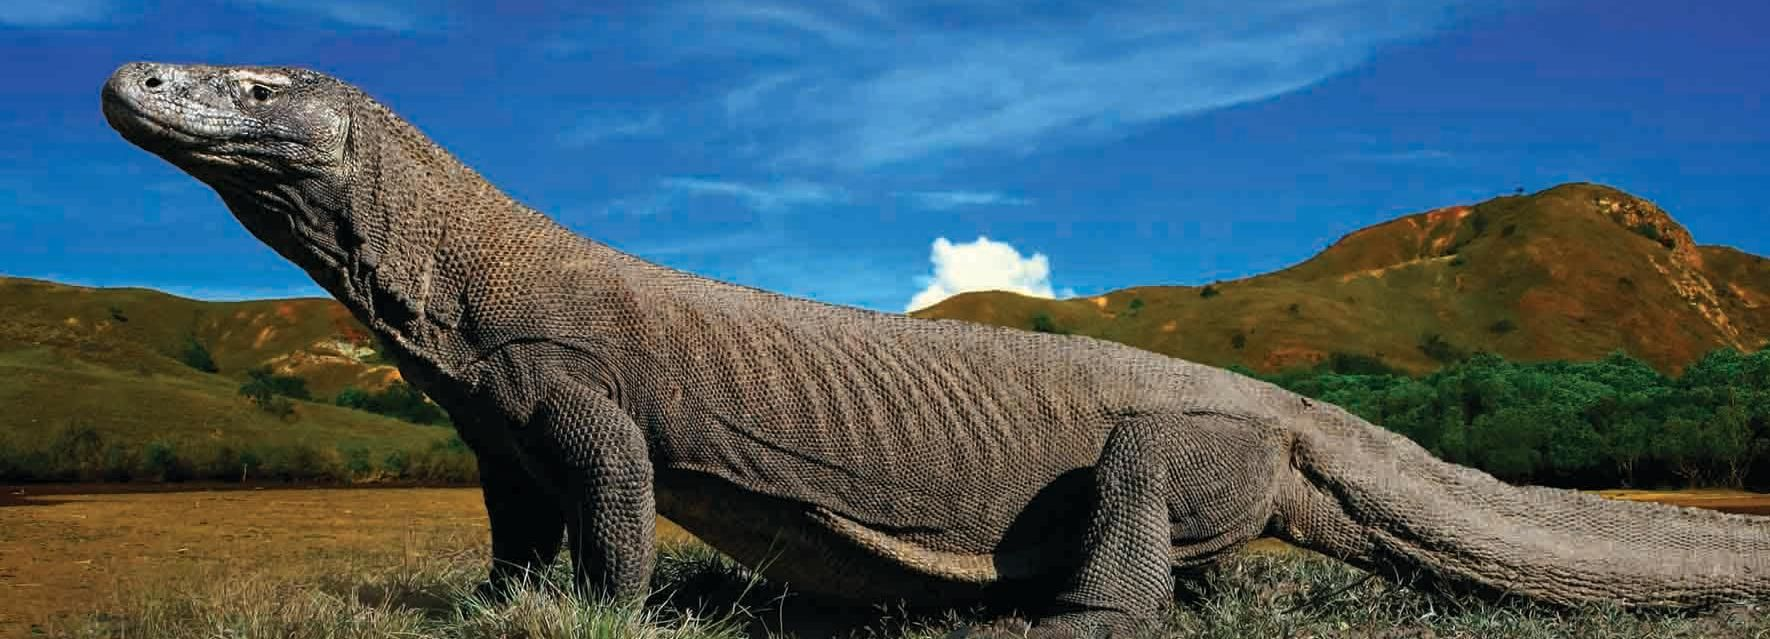 Komodo Islands: Private 2-Day Tour with Phinisi Boat Stay